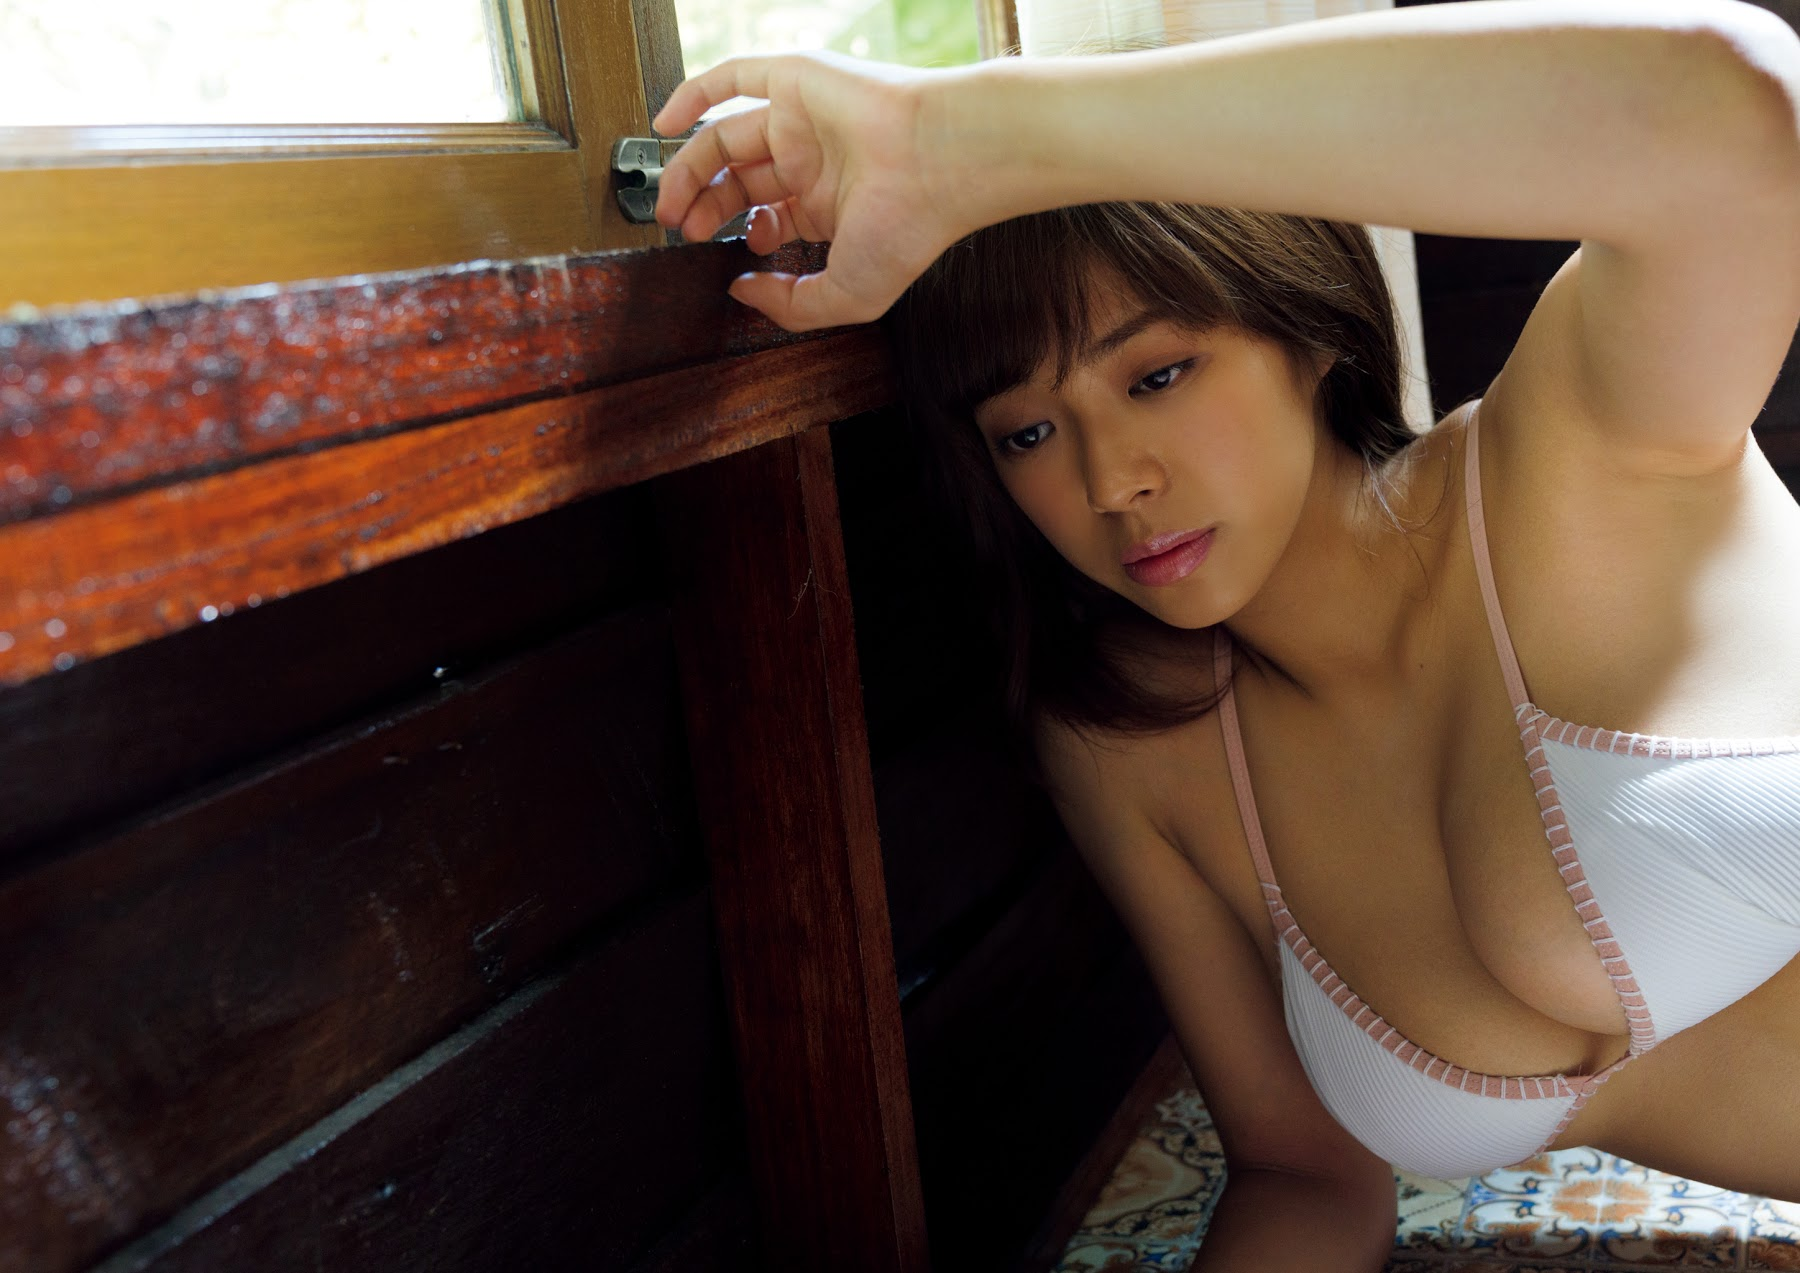 Super body of H cup Minami Wachi 2020 that exposes body and mind in tropical Thailand118